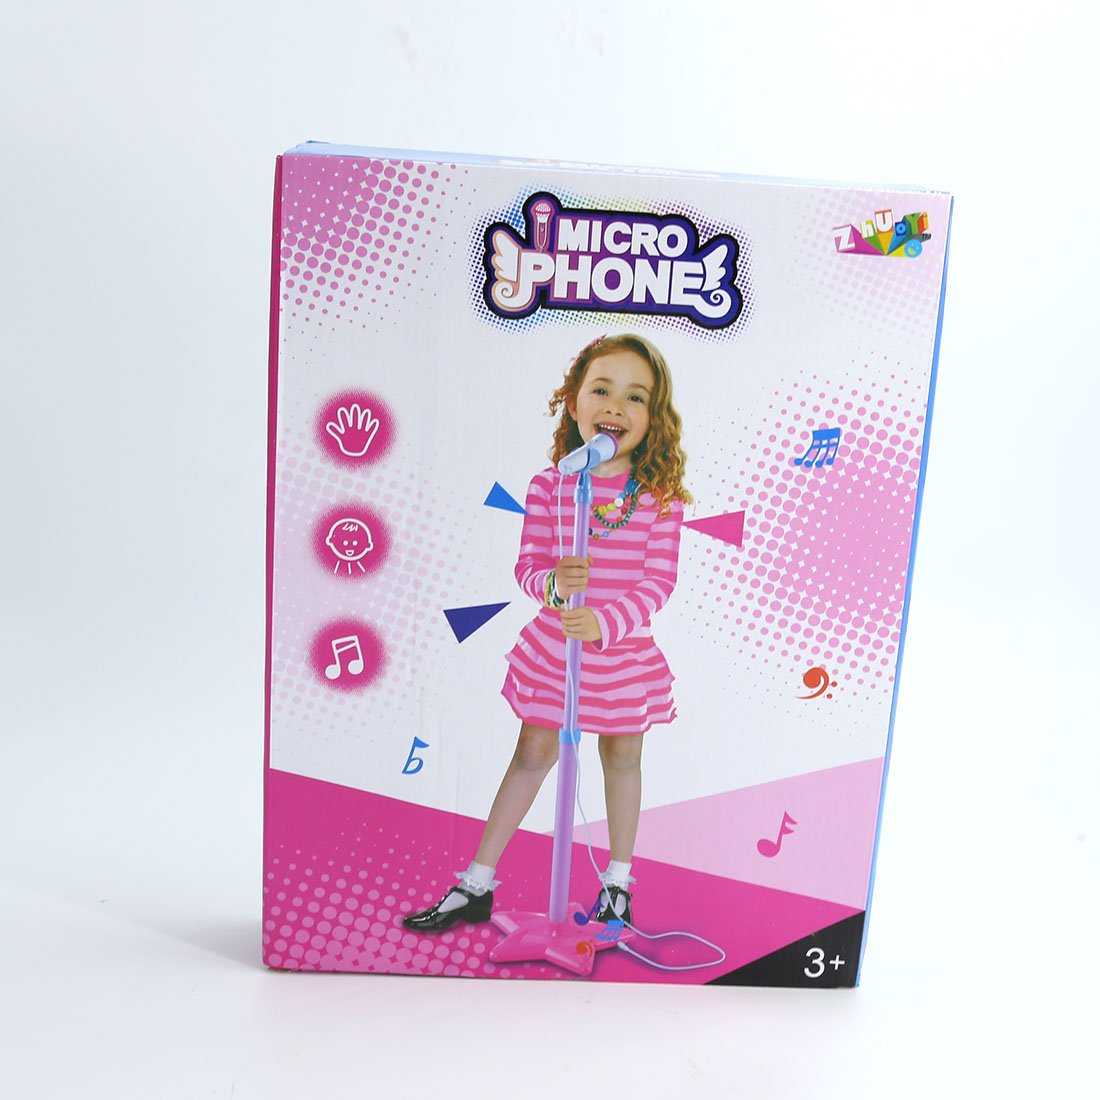 FenglinTech Microphone for Kids Portable Star Base Stand Microphone for home - (Rosy) by FenglinTech (Image #9)